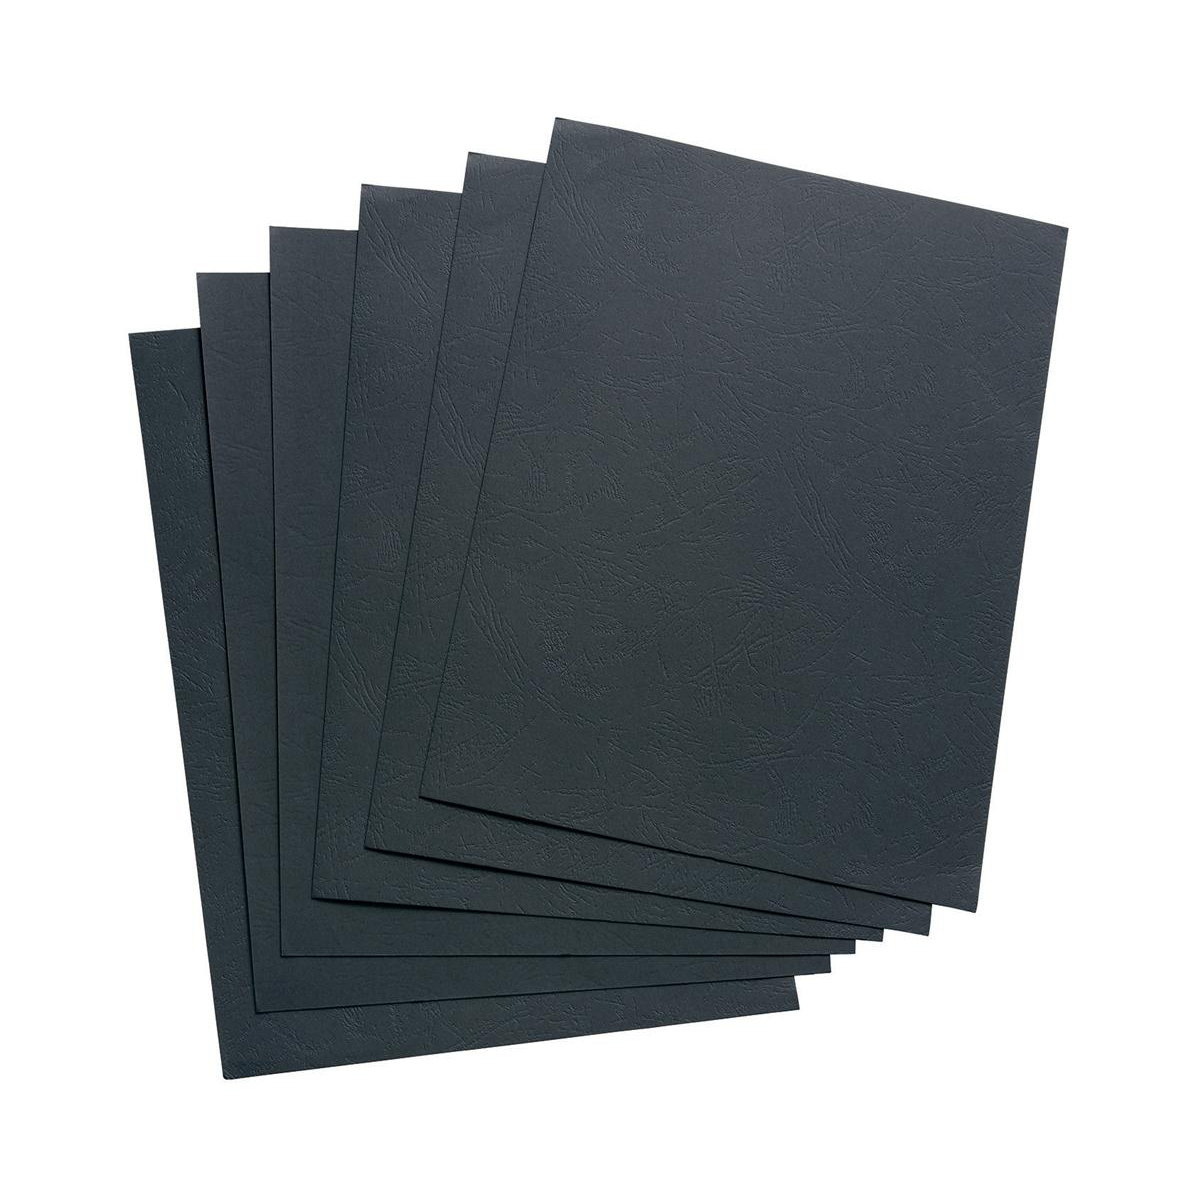 5 Star Office Binding Covers 240gsm Leathergrain A4 Black Pack 100